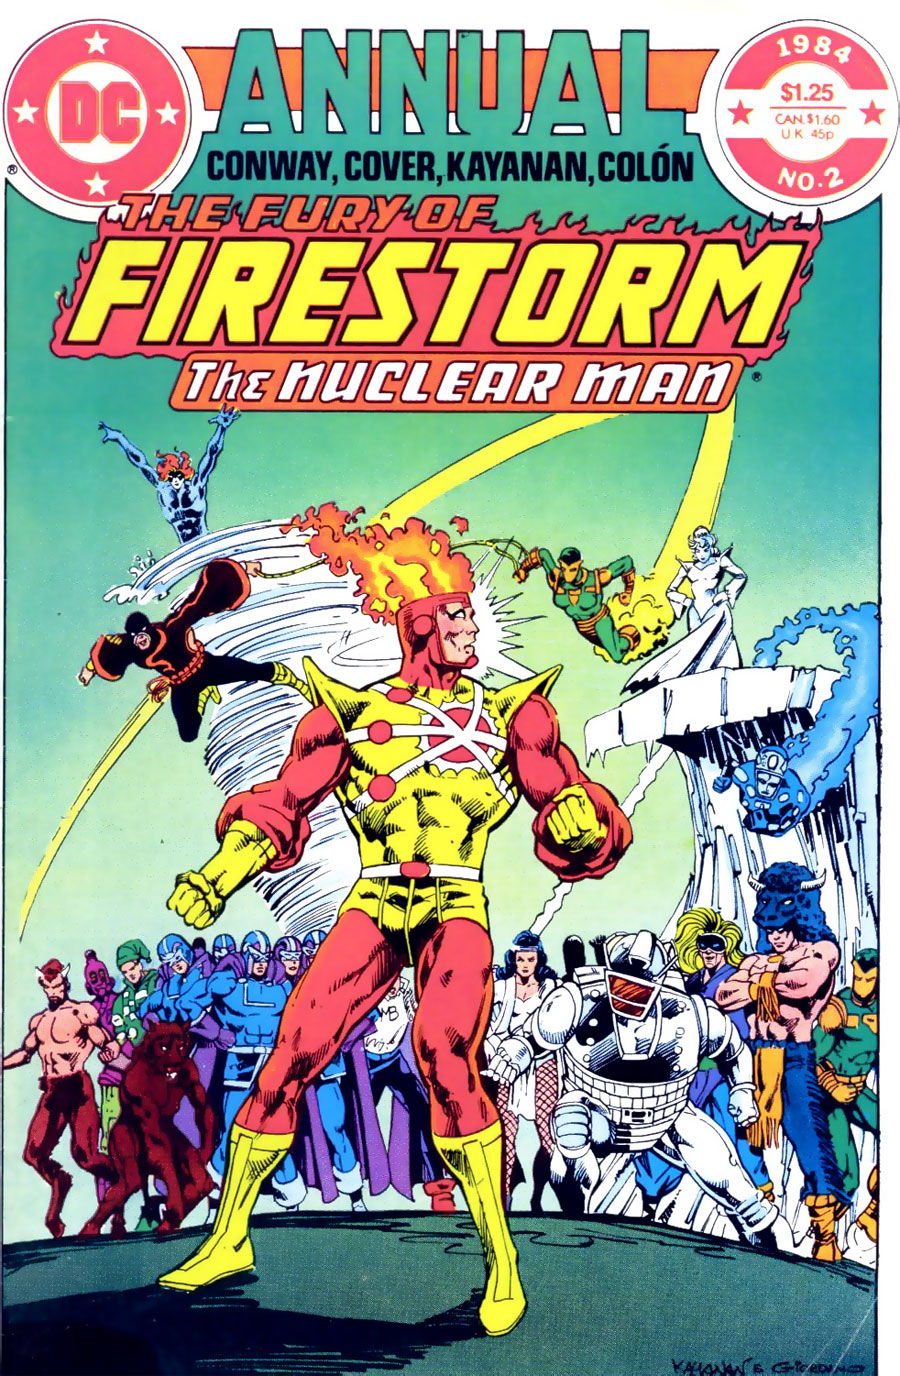 FURY OF FIRESTORM ANNUAL (Classic) #2 cover by Rafael Kayanan and Dick Giordano